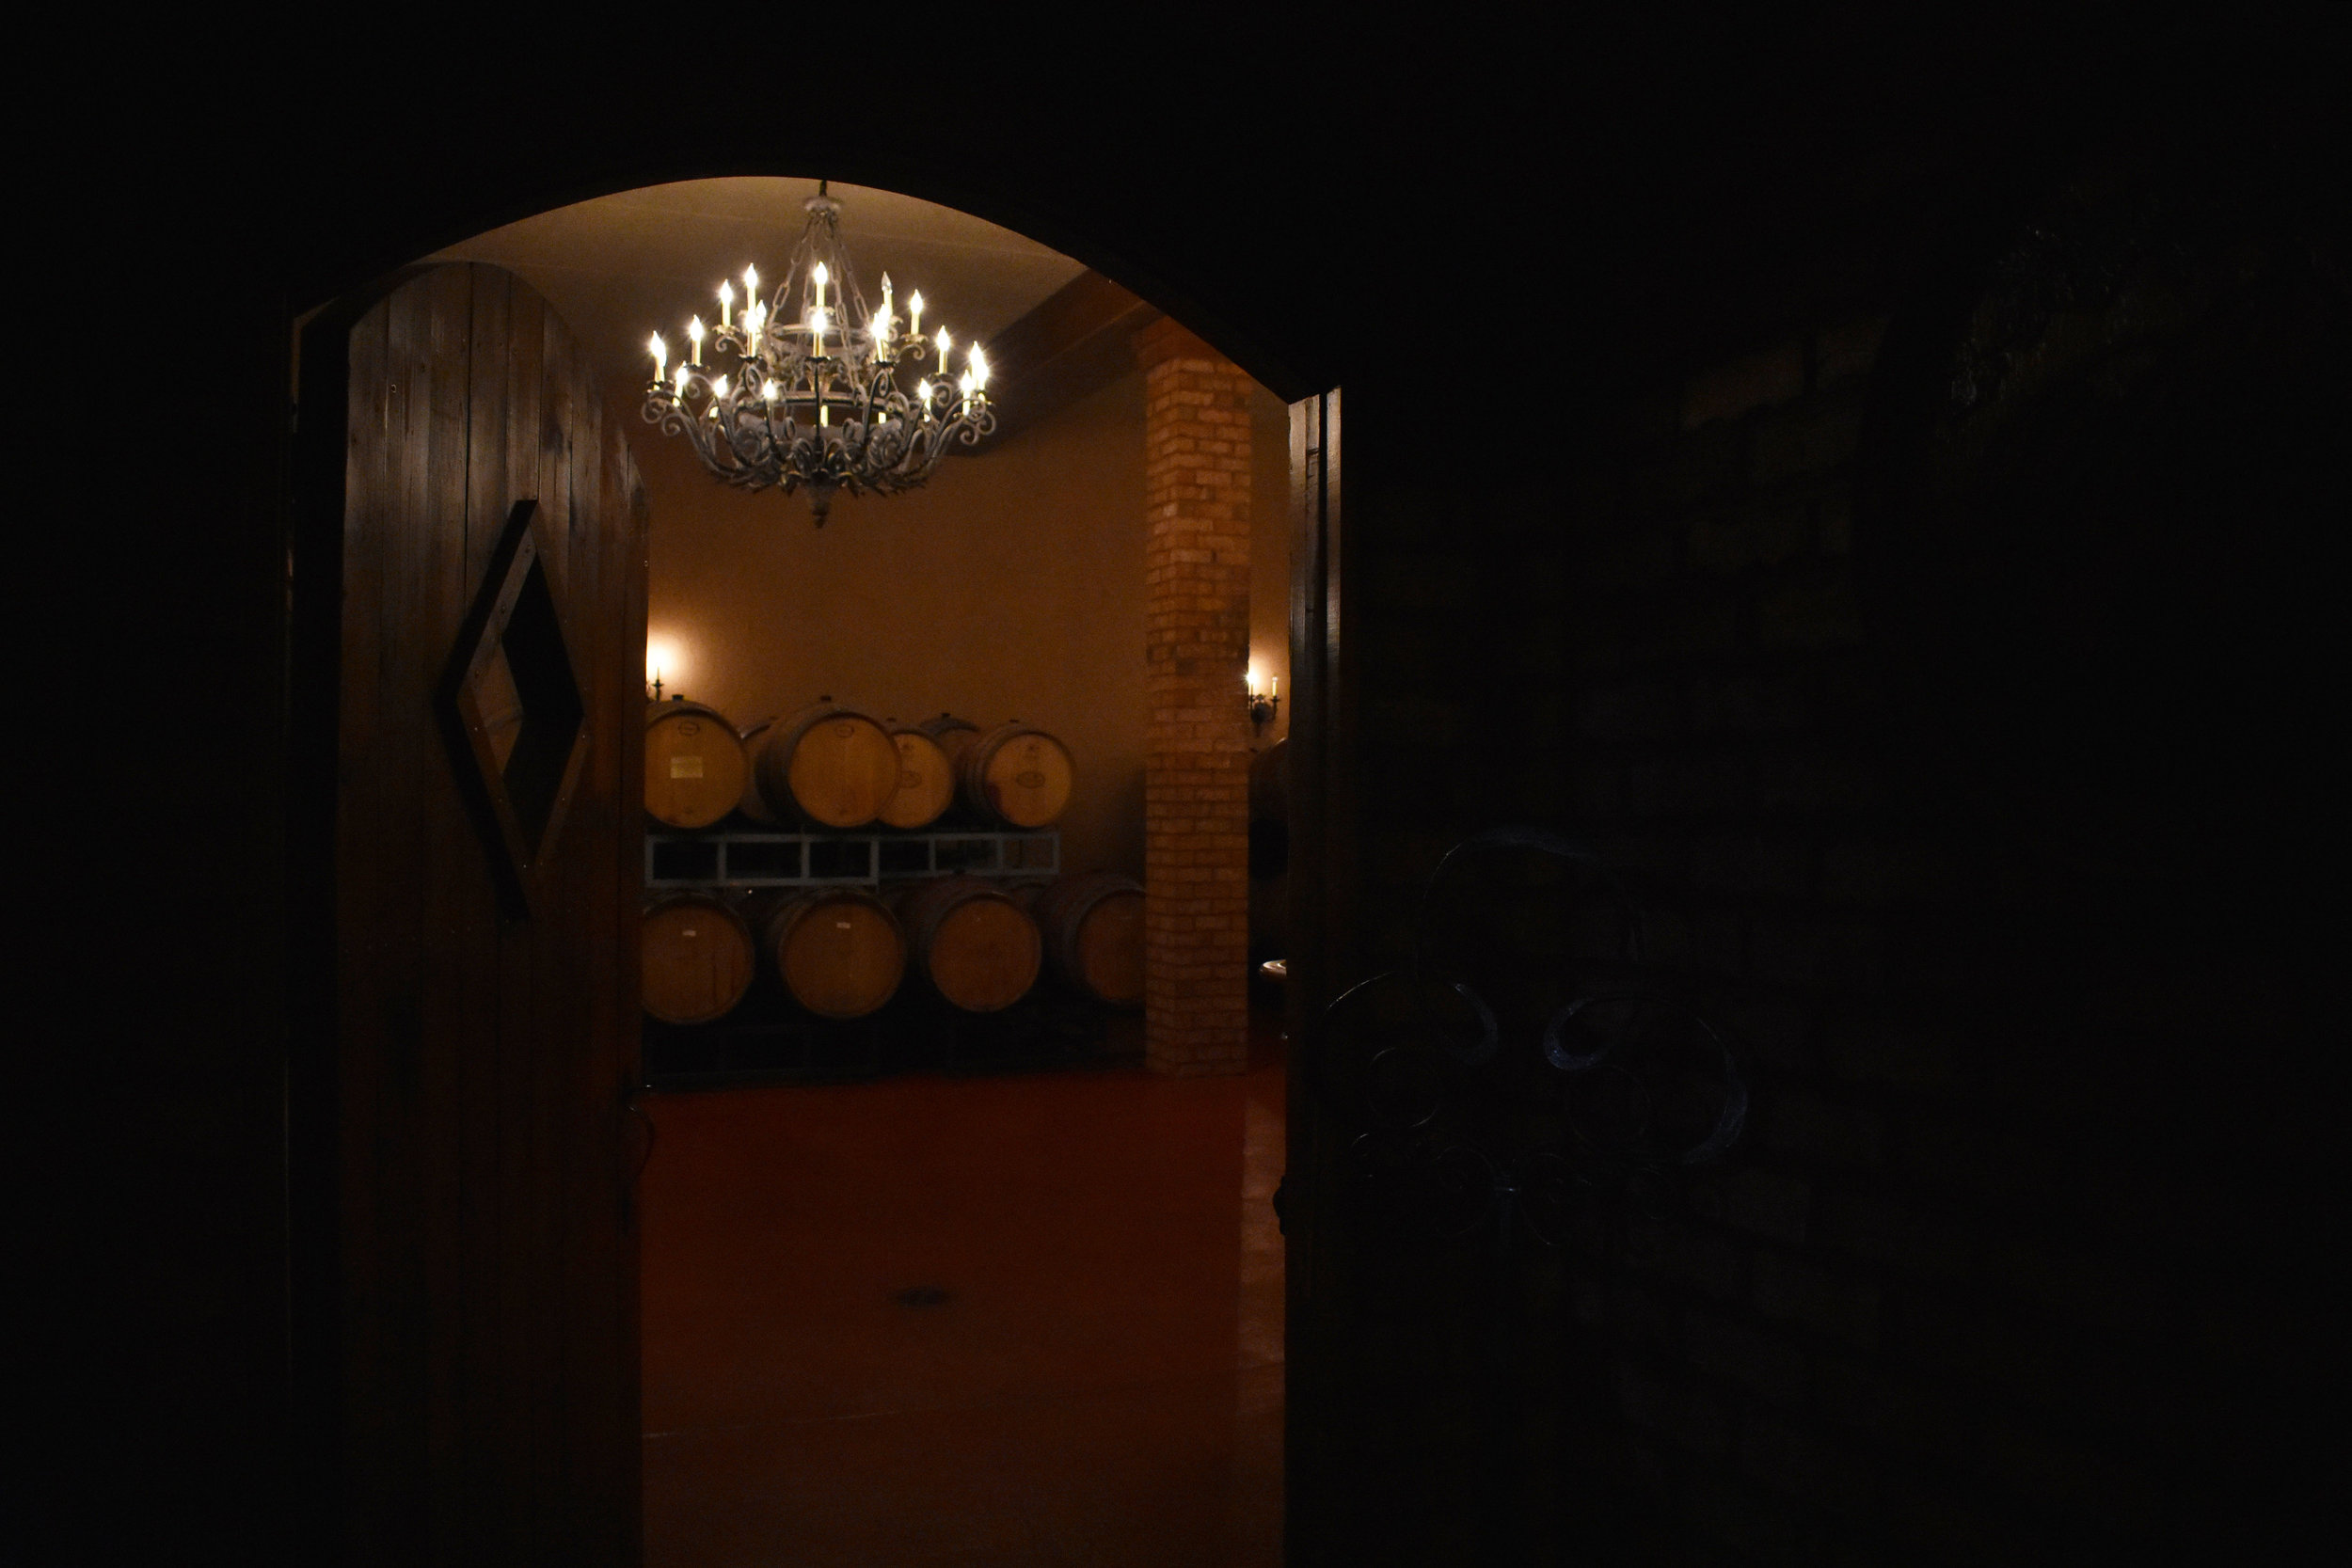 The cellar at Potomac Point Vineyard and Winery in Stafford, Va., is pictured Friday, Feb. 2, 2018. (Lindsey Leake/American University)